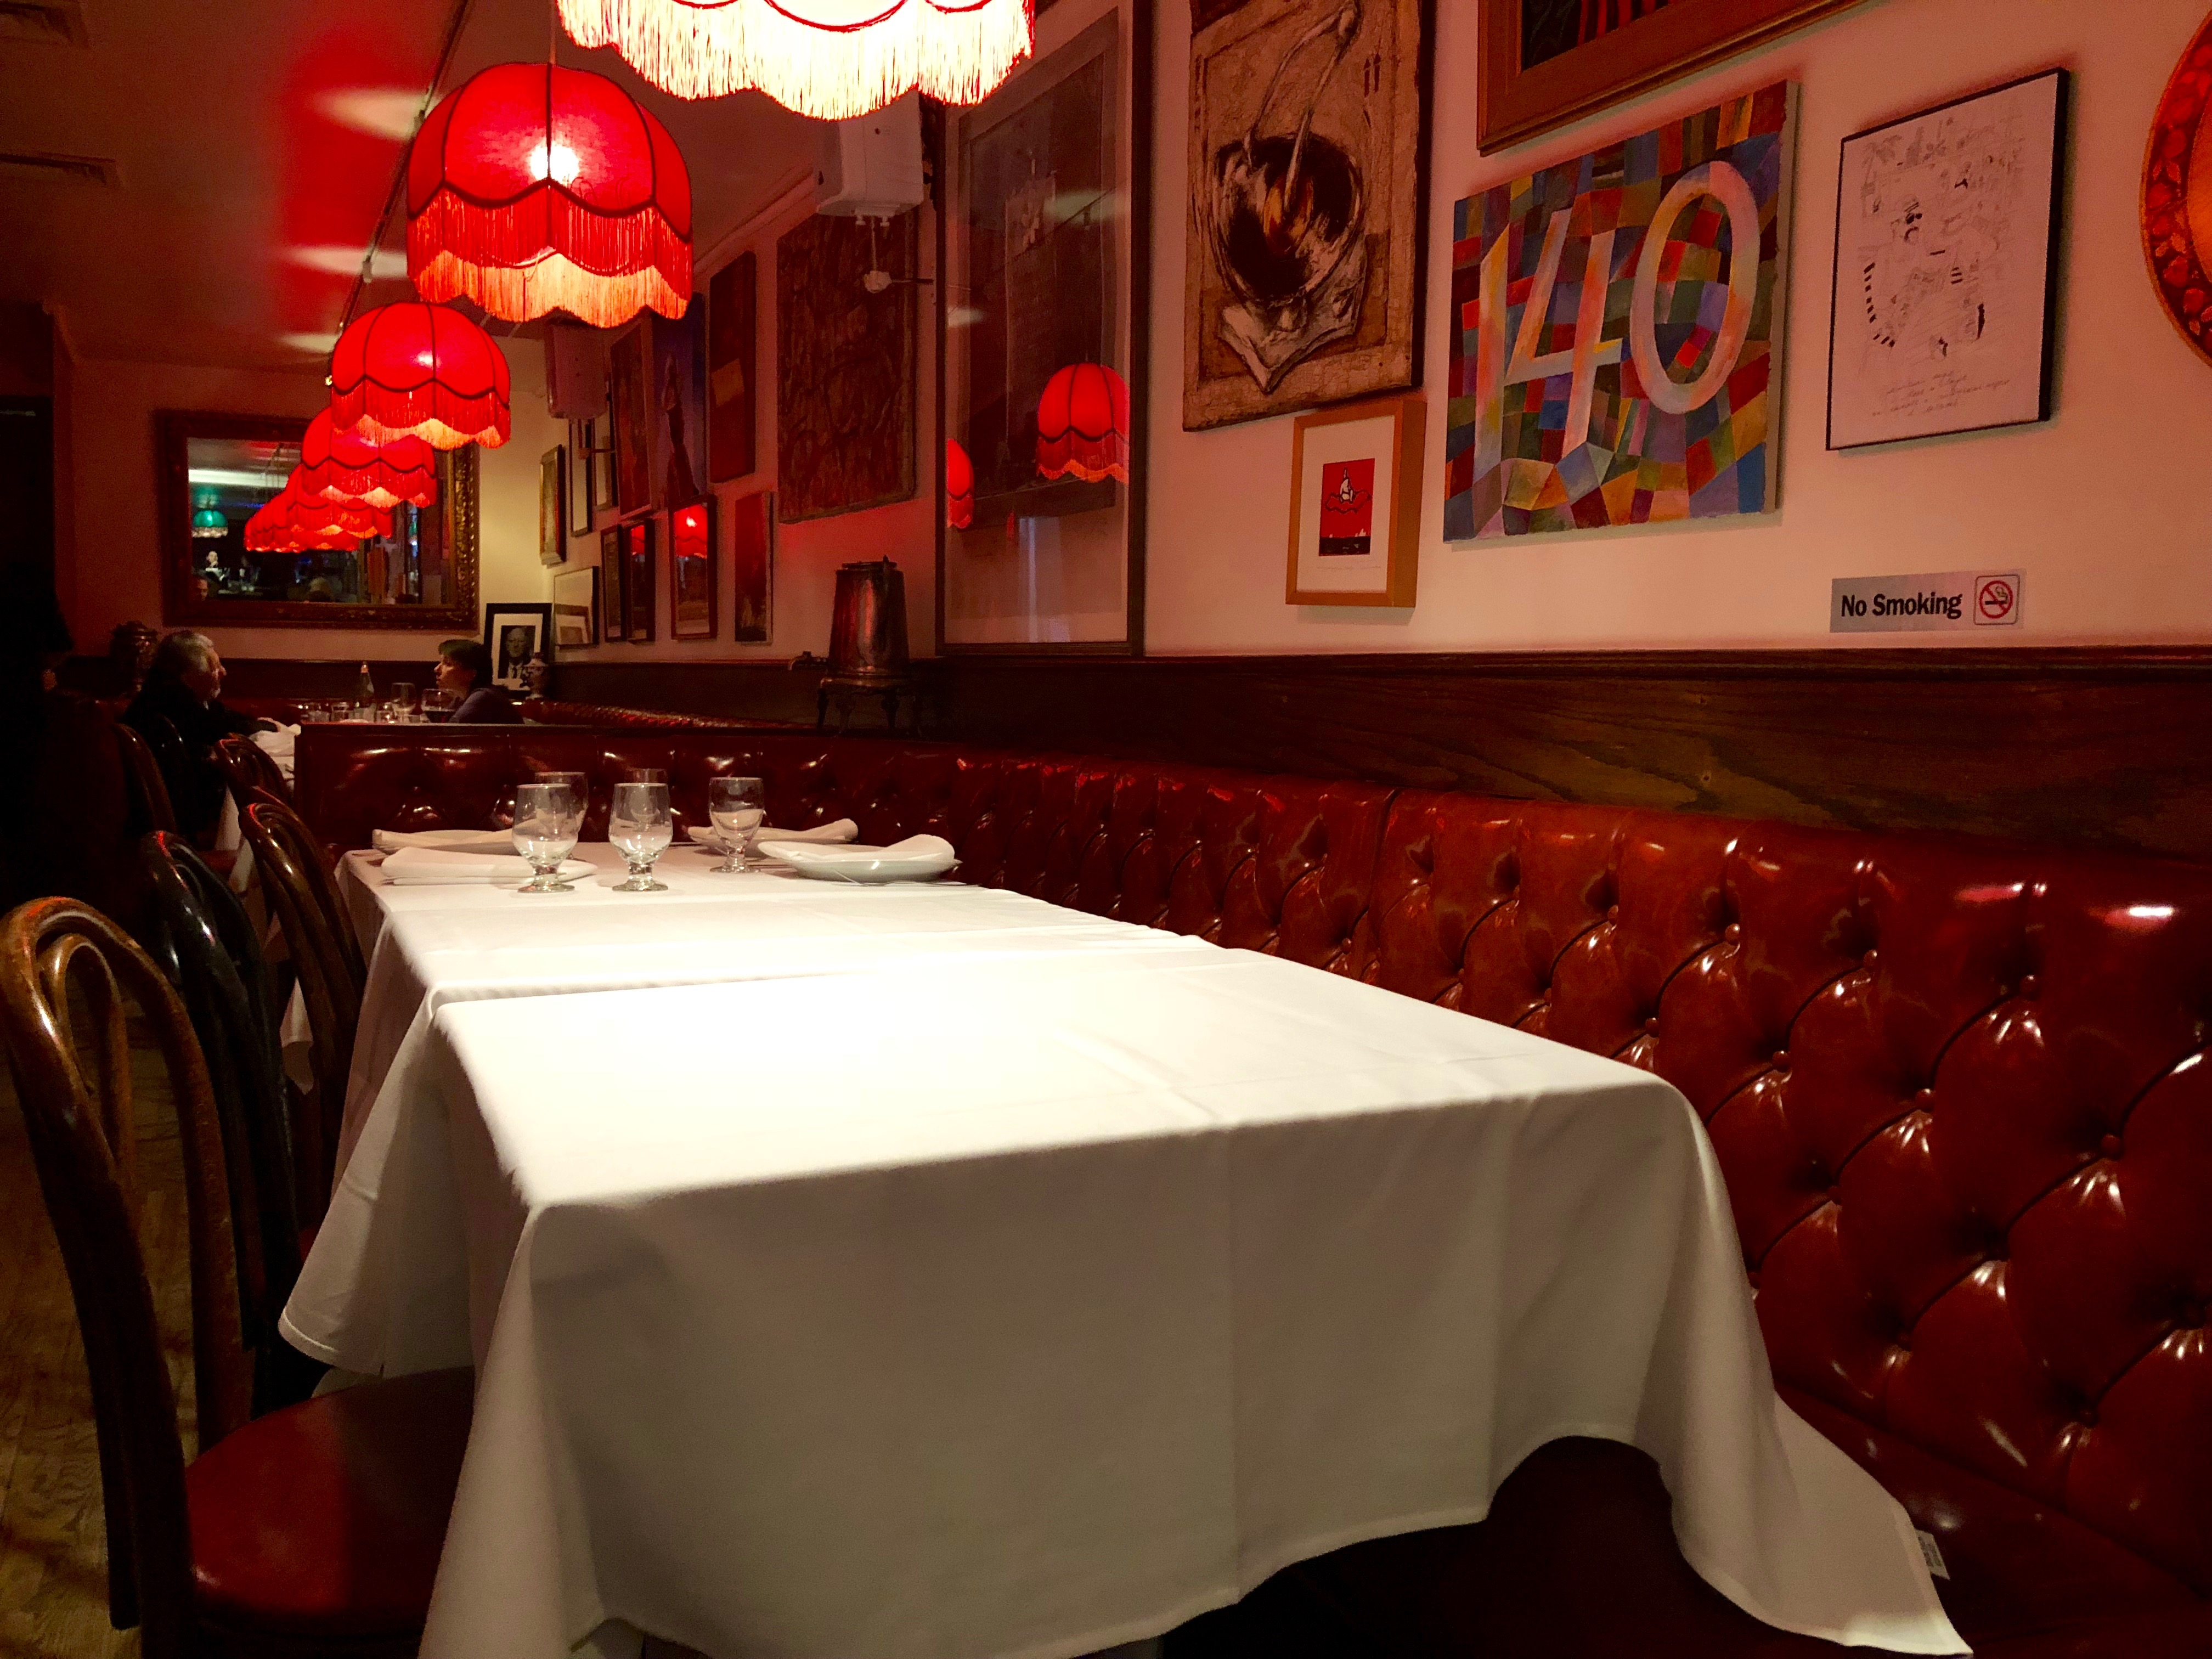 Cuomo threatens to end indoor dining if COVID rate 'doesn't stabilize'